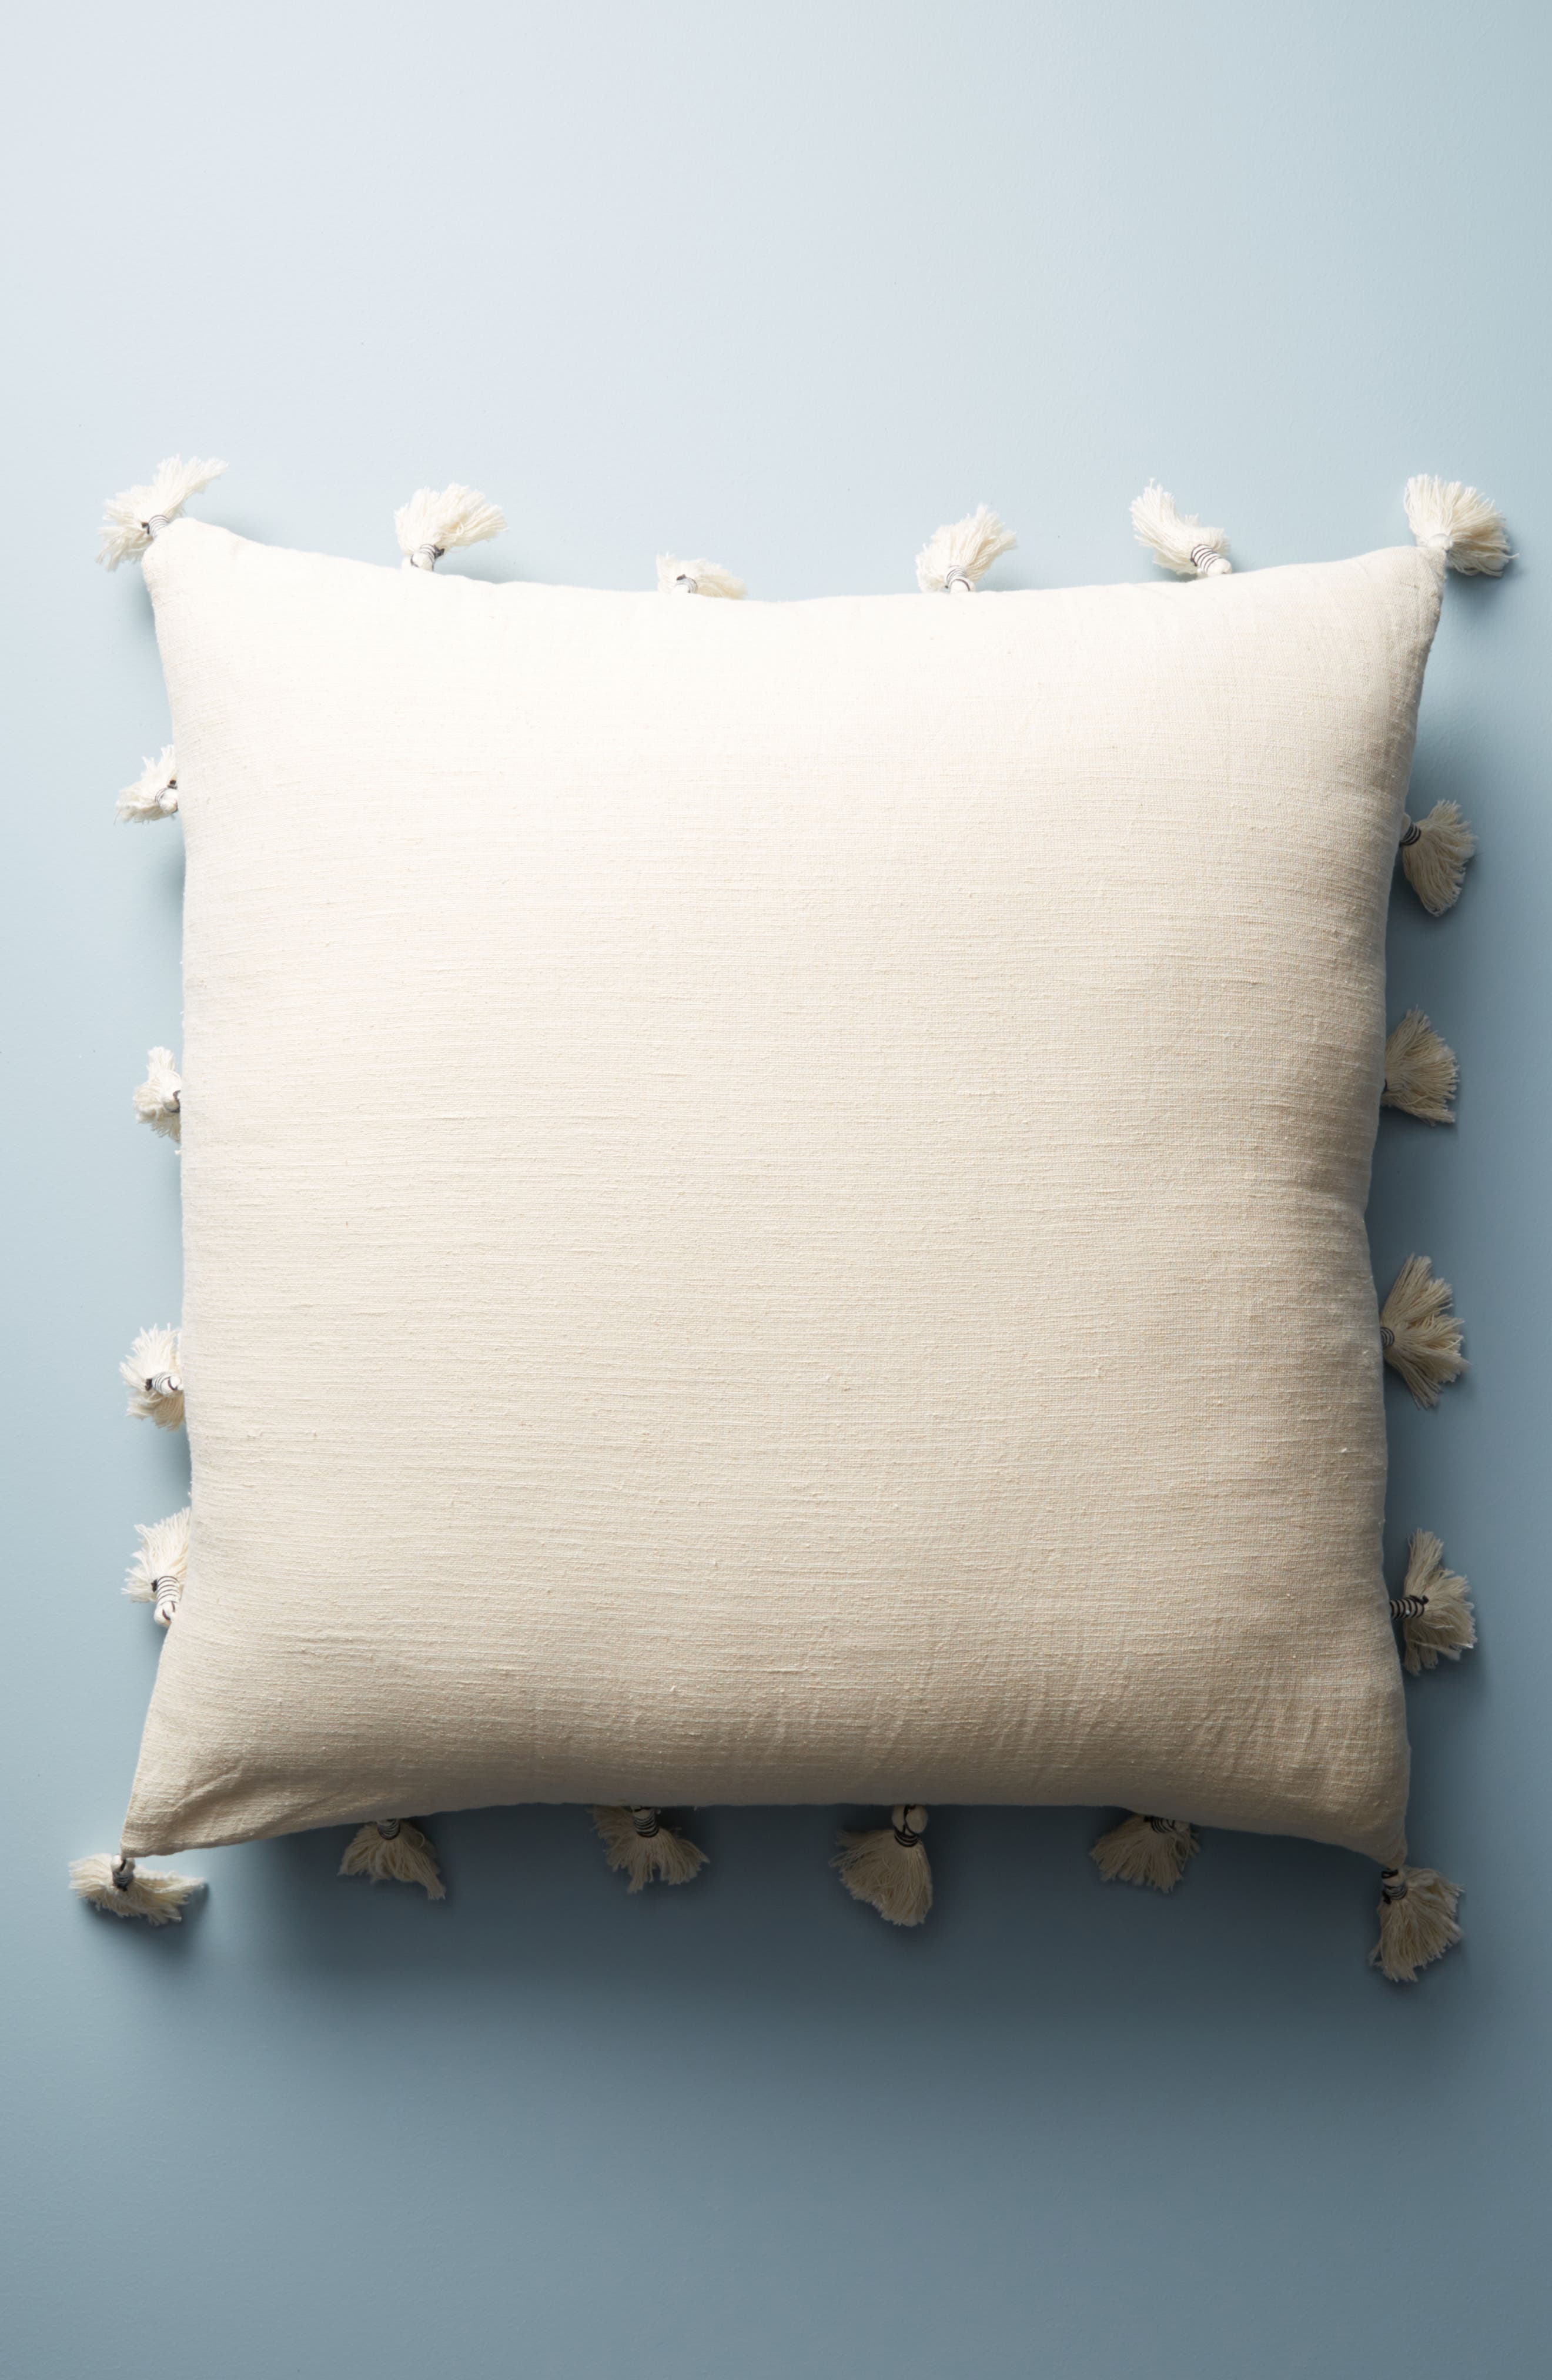 Tufted Amal Accent Pillow,                             Alternate thumbnail 2, color,